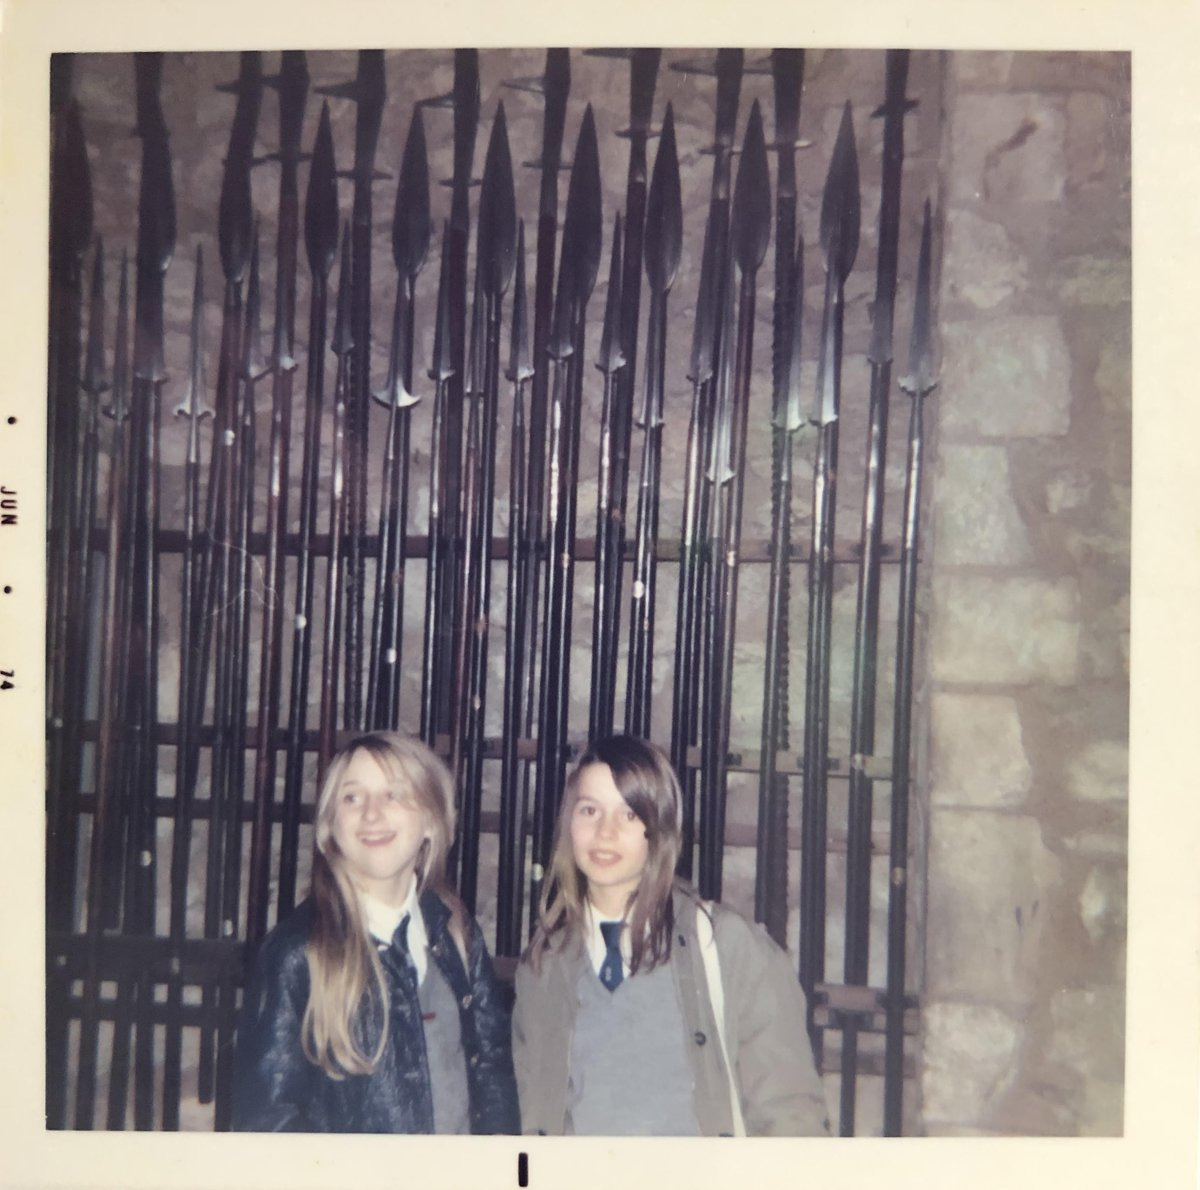 Me and my best friend, Bridget (yes, THE Bridget, if you have read #othergirlslikeme) on an @TestbourneCS school trip in the #1970s. Look at that mischievous smile, you can see why I adored her! #bestfriends #schooldays @BedazzledInk #Girlpower https://t.co/rhBaAgR0w2